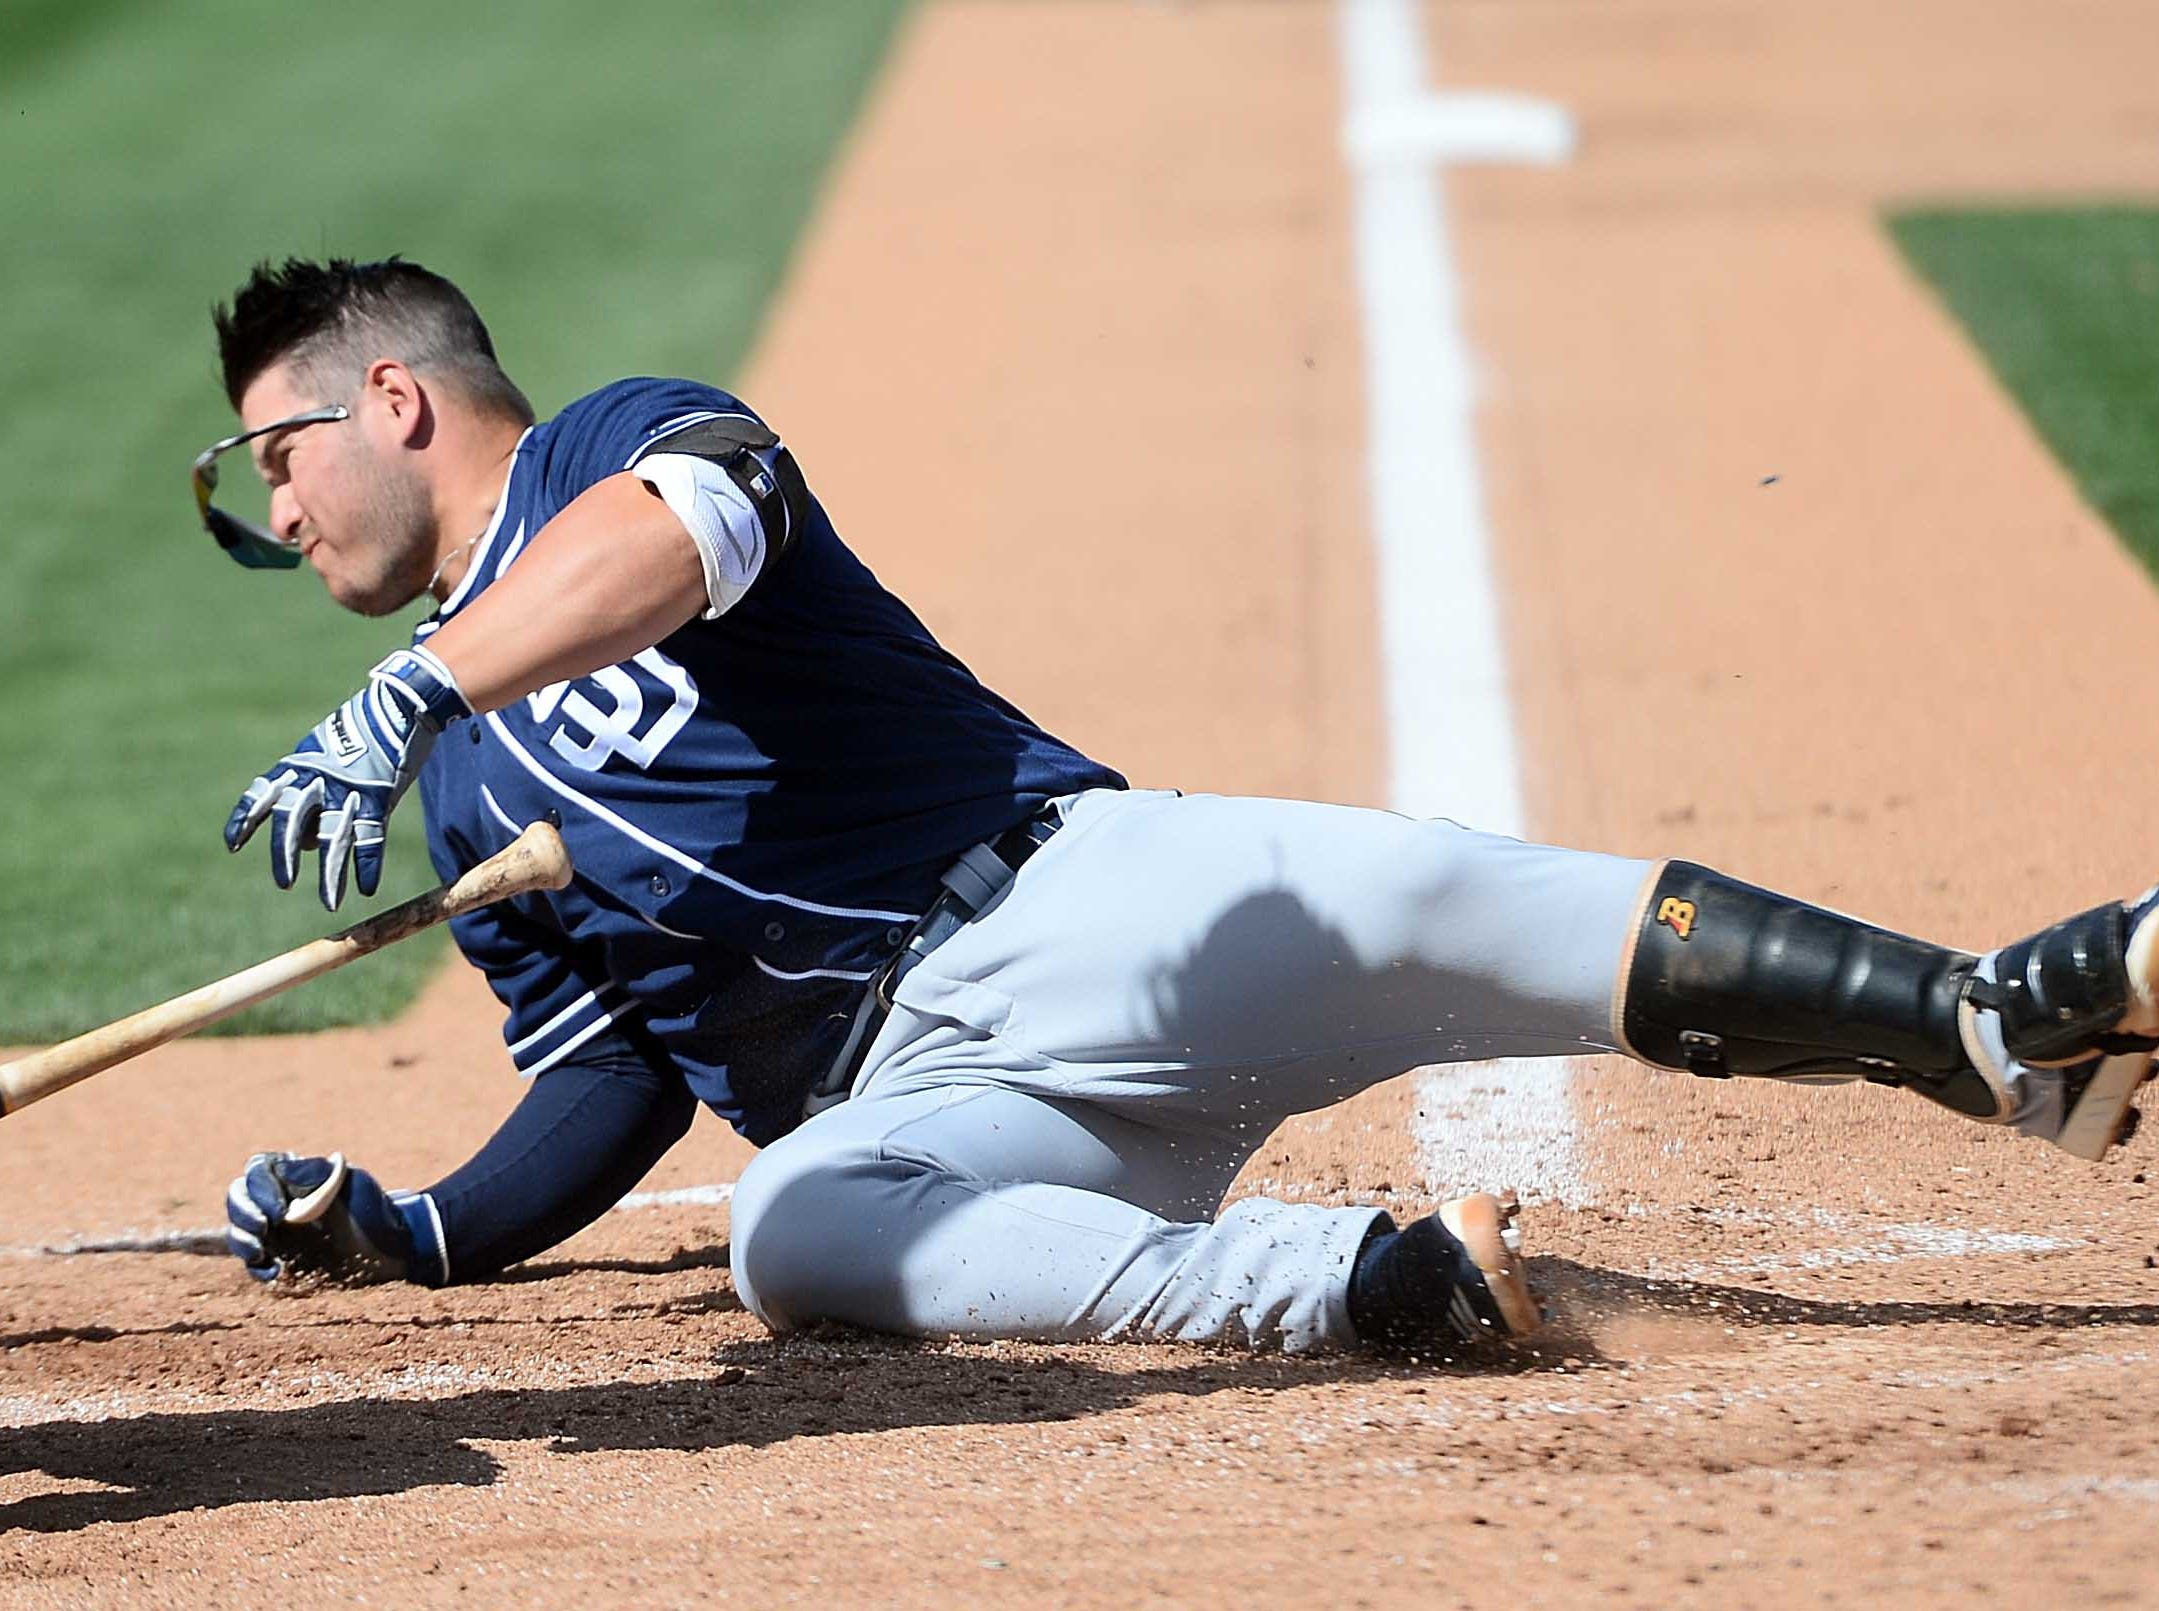 March 8: San Diego Padres first baseman Ty France hits the ground after being hit in the head with a pitch against the Oakland Athletics.